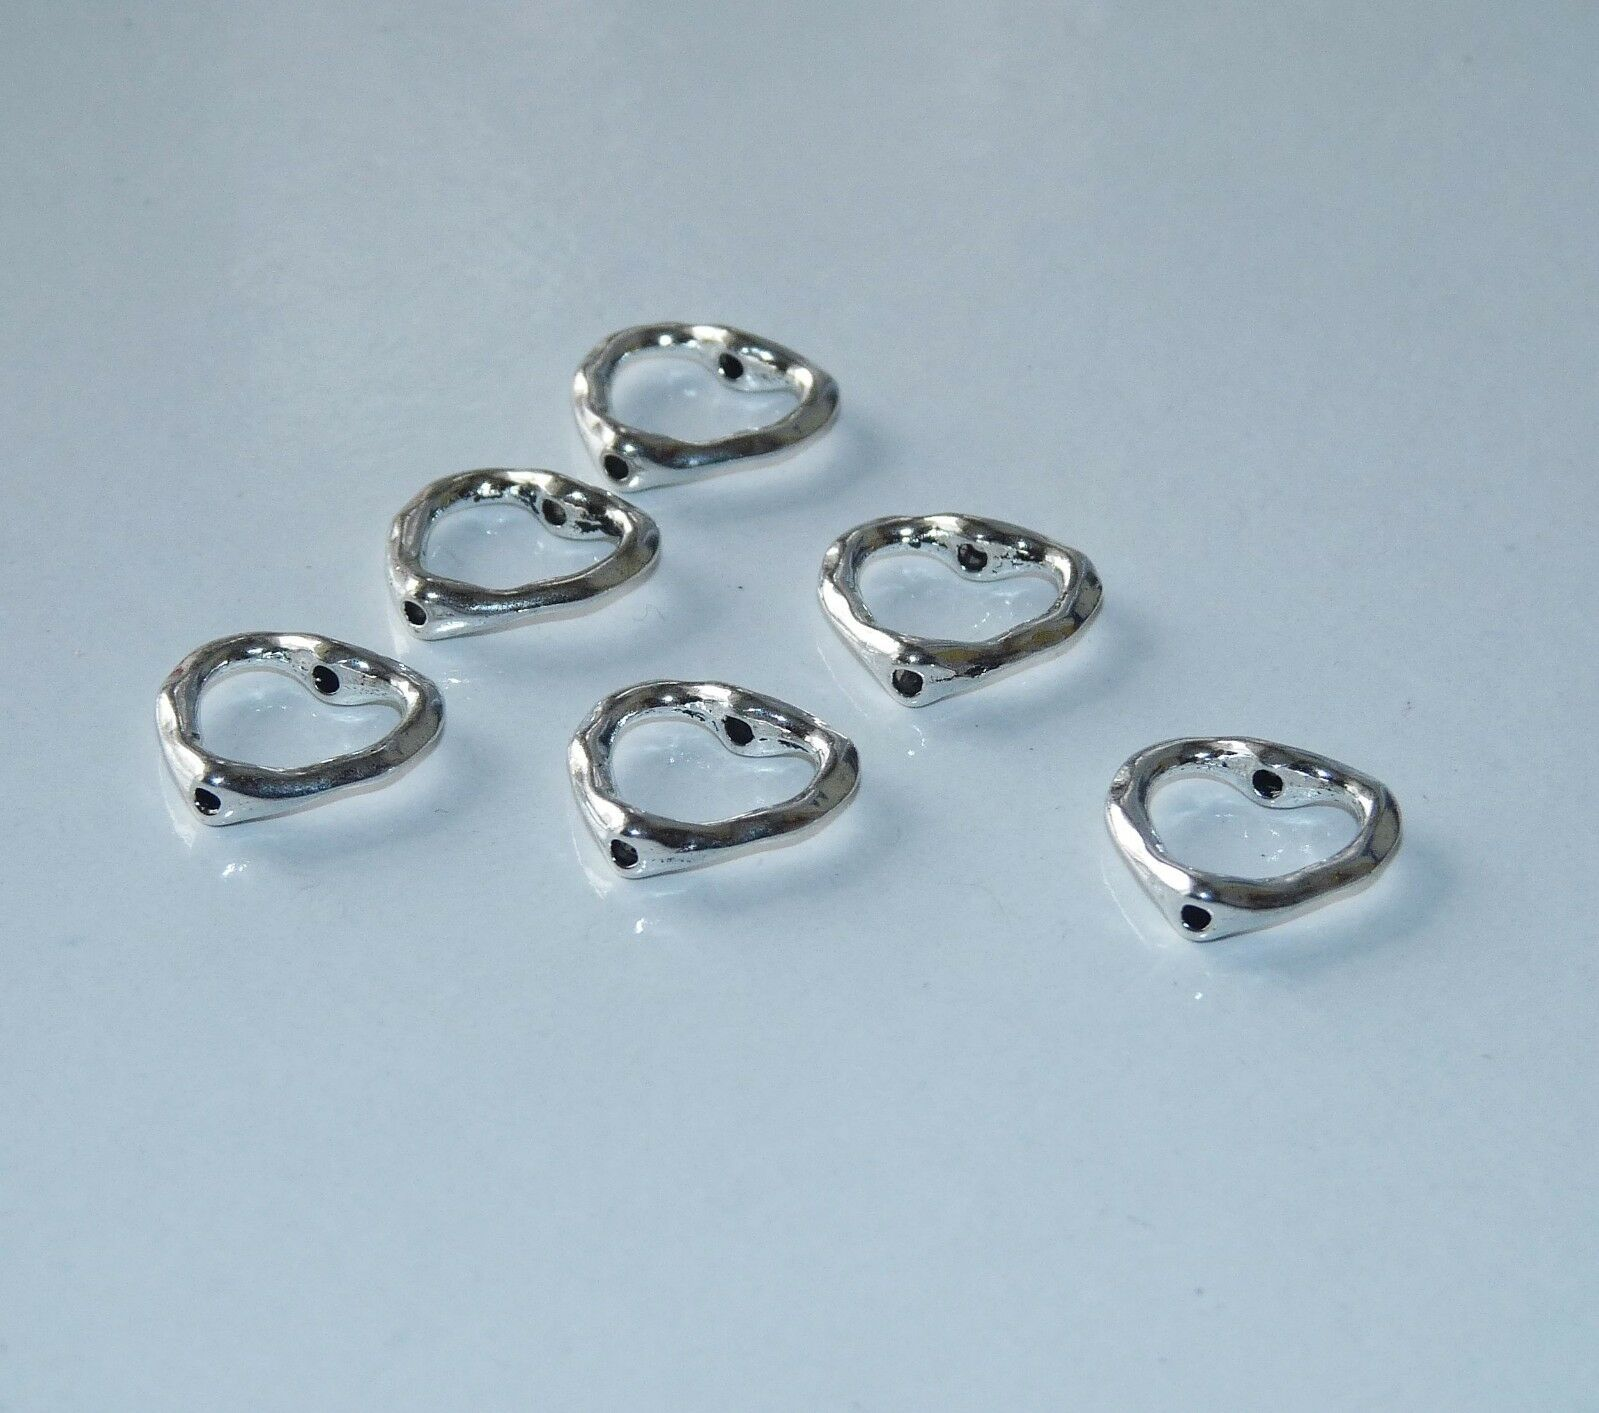 10 Flat Metal Spacer Bead Frame Heart Charm 14mm Fit 8mm Beading Supplies Silver